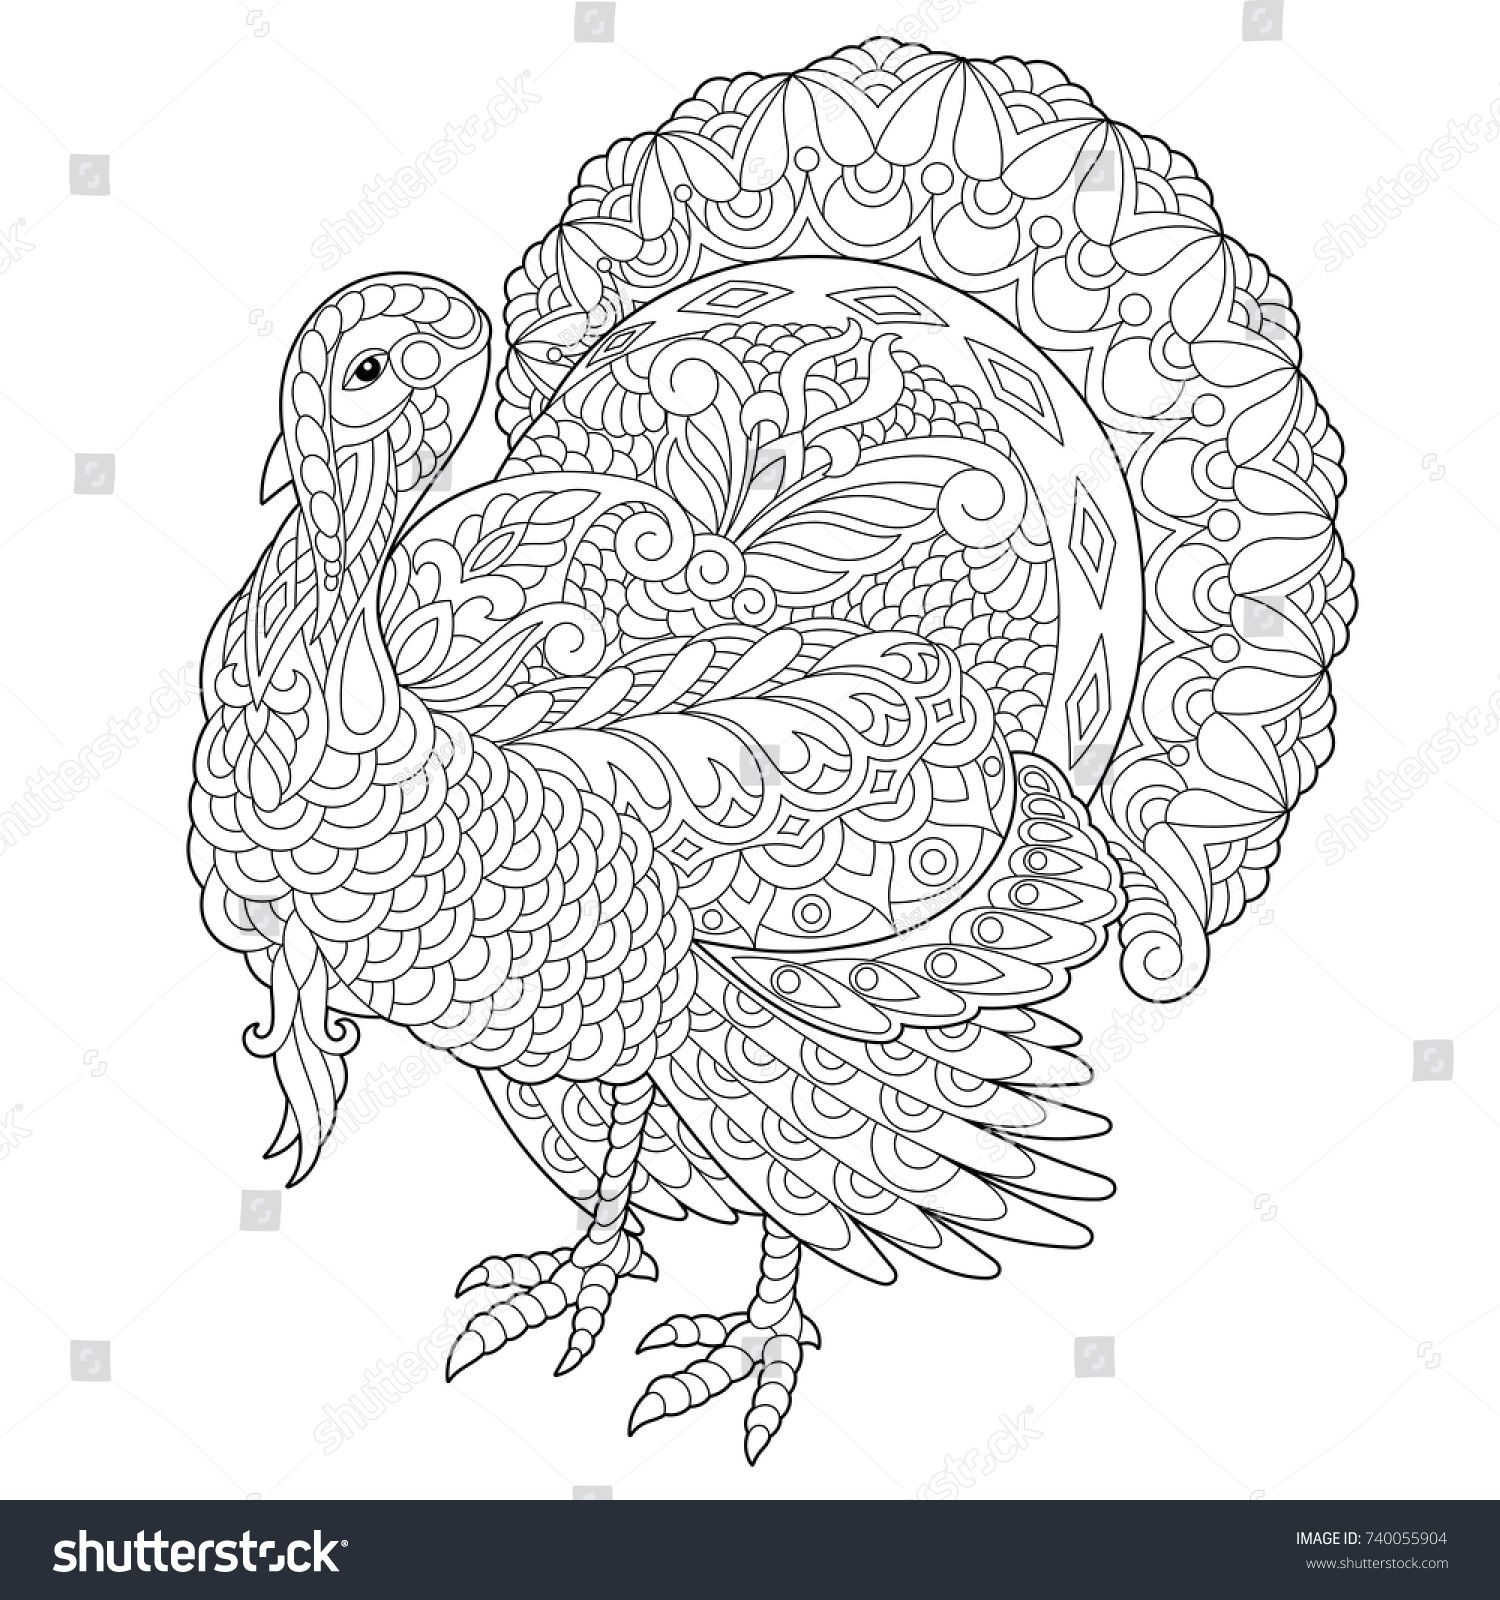 coloring pages greeting cards Download-Coloring page of turkey for Thanksgiving Day greeting card Freehand sketch drawing for adult antistress coloring book with doodle and zentangle elements 4-o